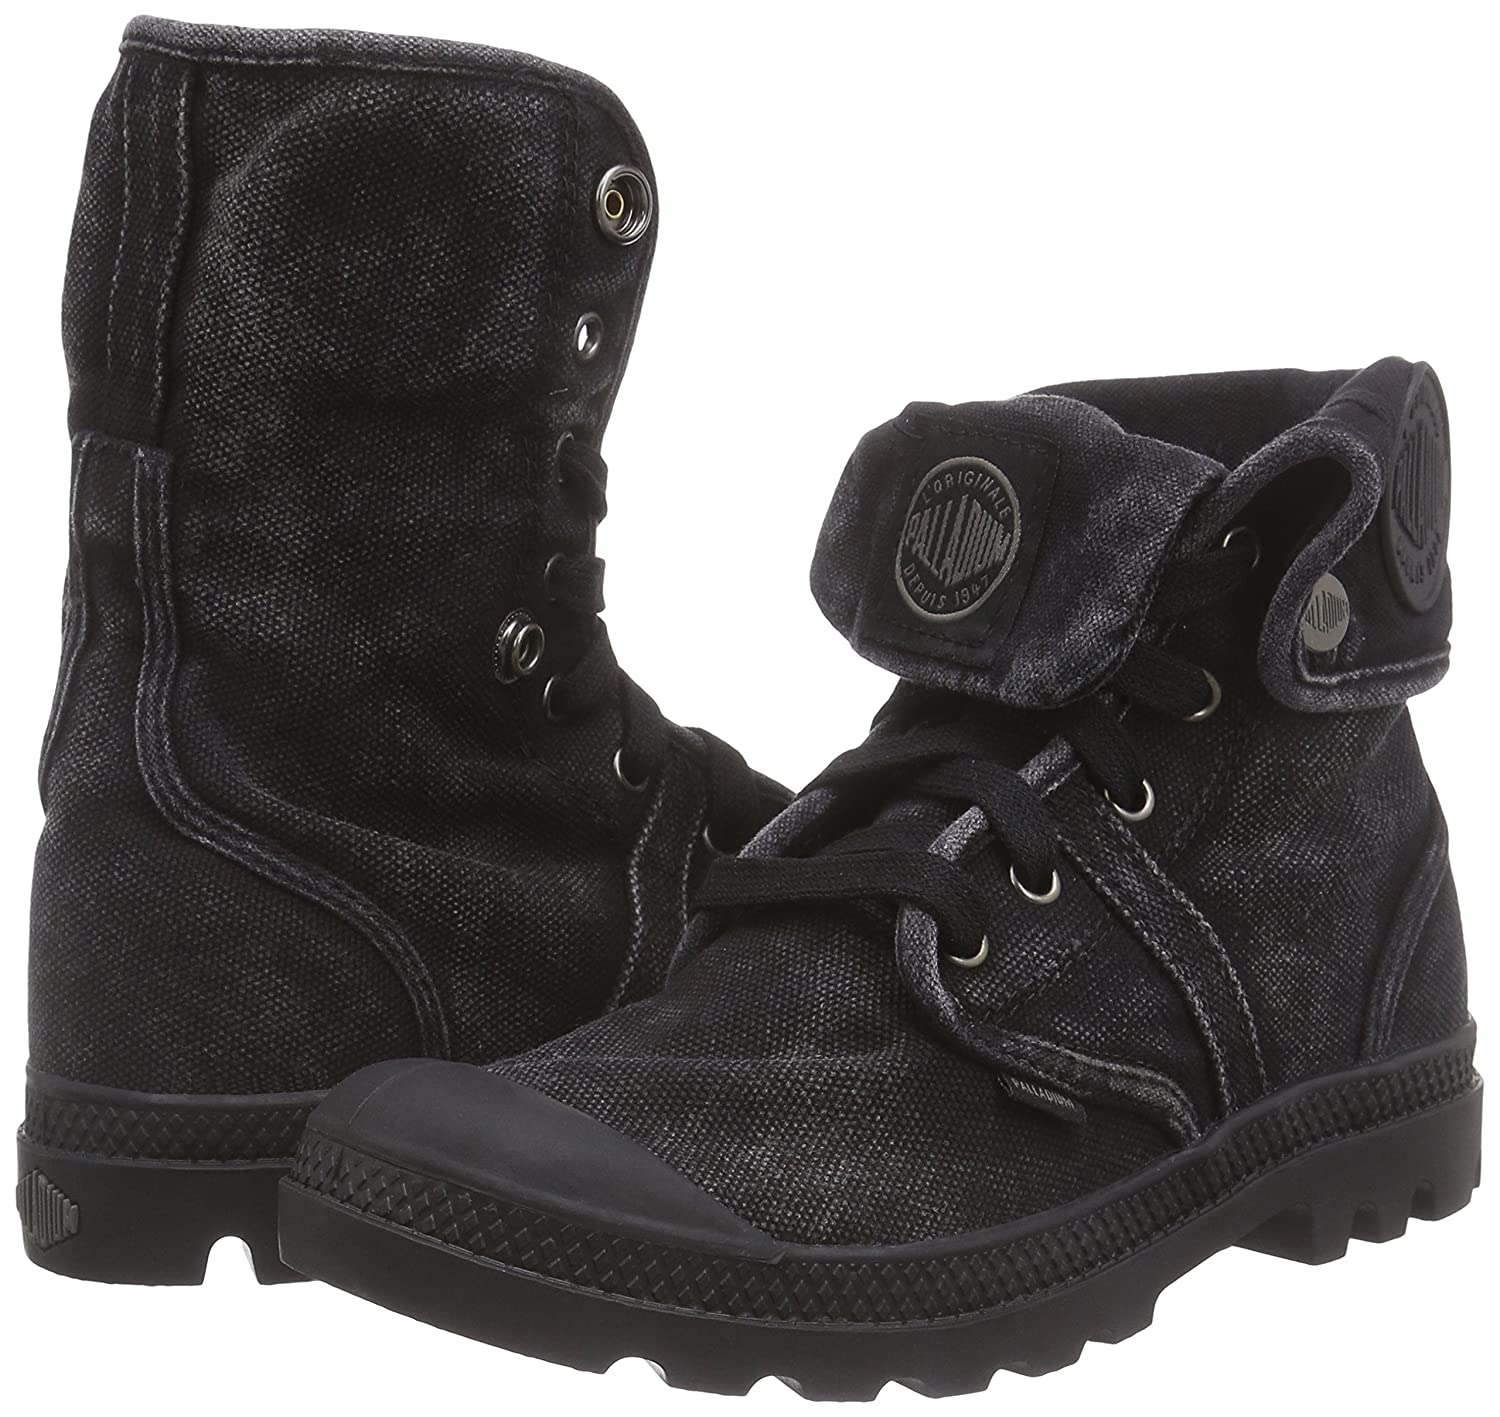 Palladium Women s Pallabrouse Baggy Textile Black Metal High-Top Canvas  Boot - 8M  Buy Online at Low Prices in India - Amazon.in b9bde29d0bd